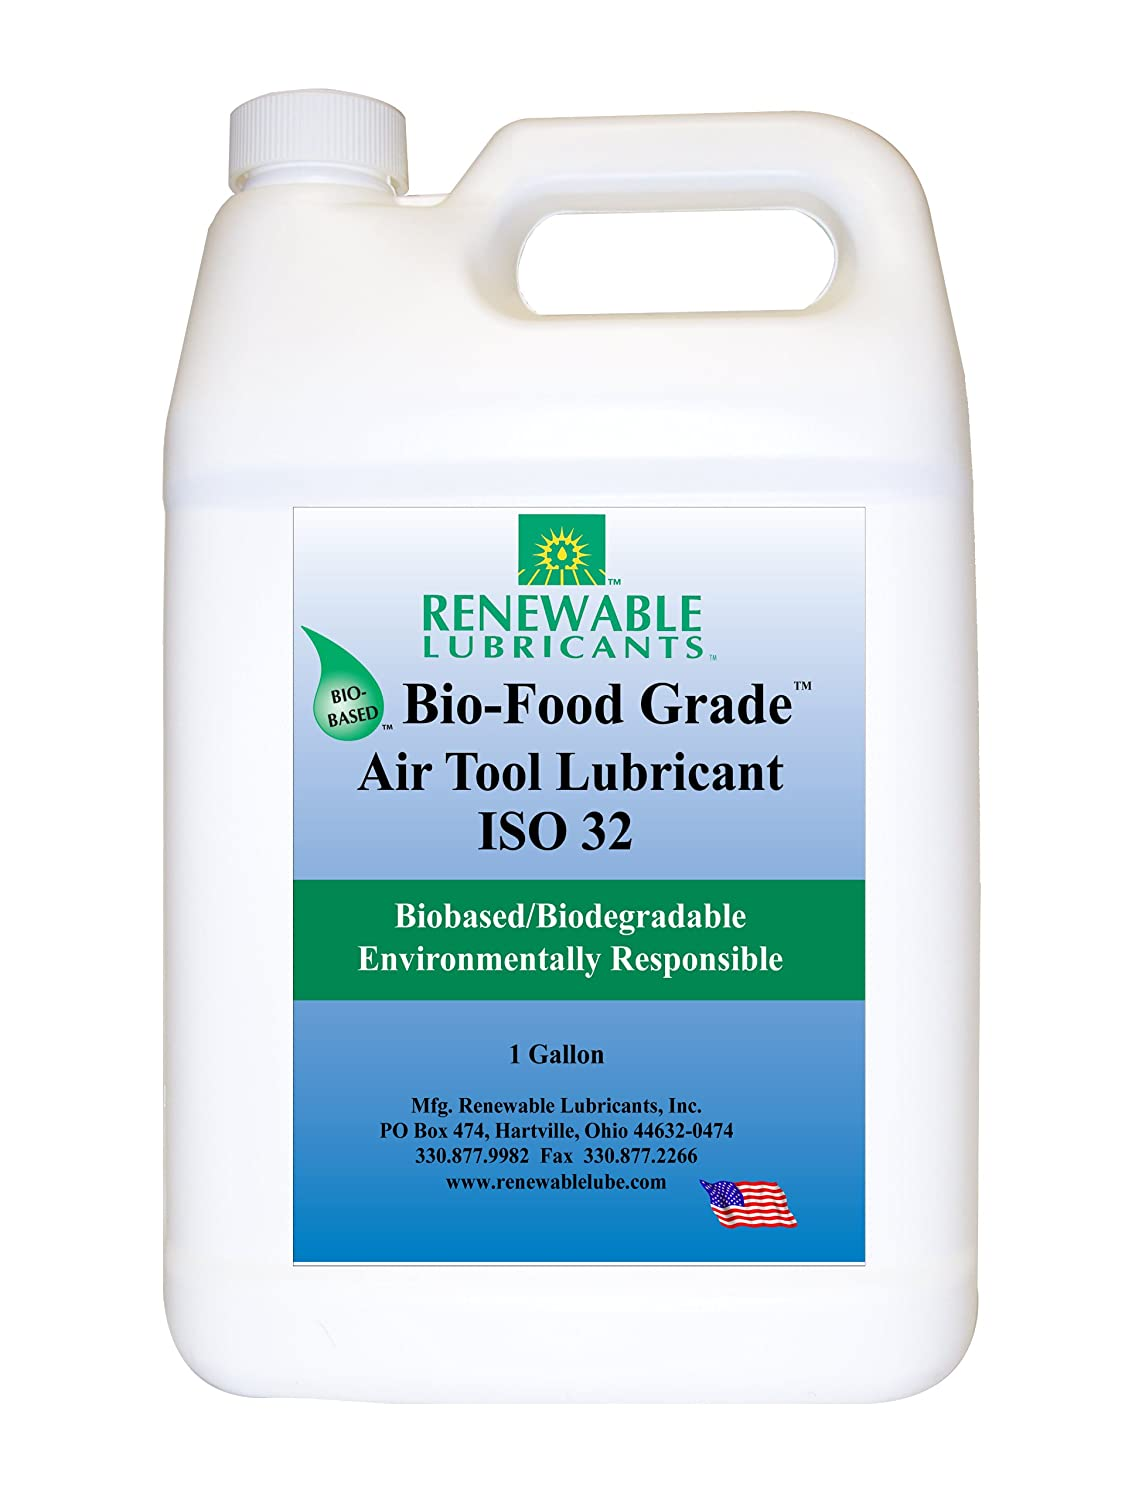 Renewable Lubricants Bio-Food Grade ISO 32 Air Tool Lubricant, 1 Gallon Bottle (87463)